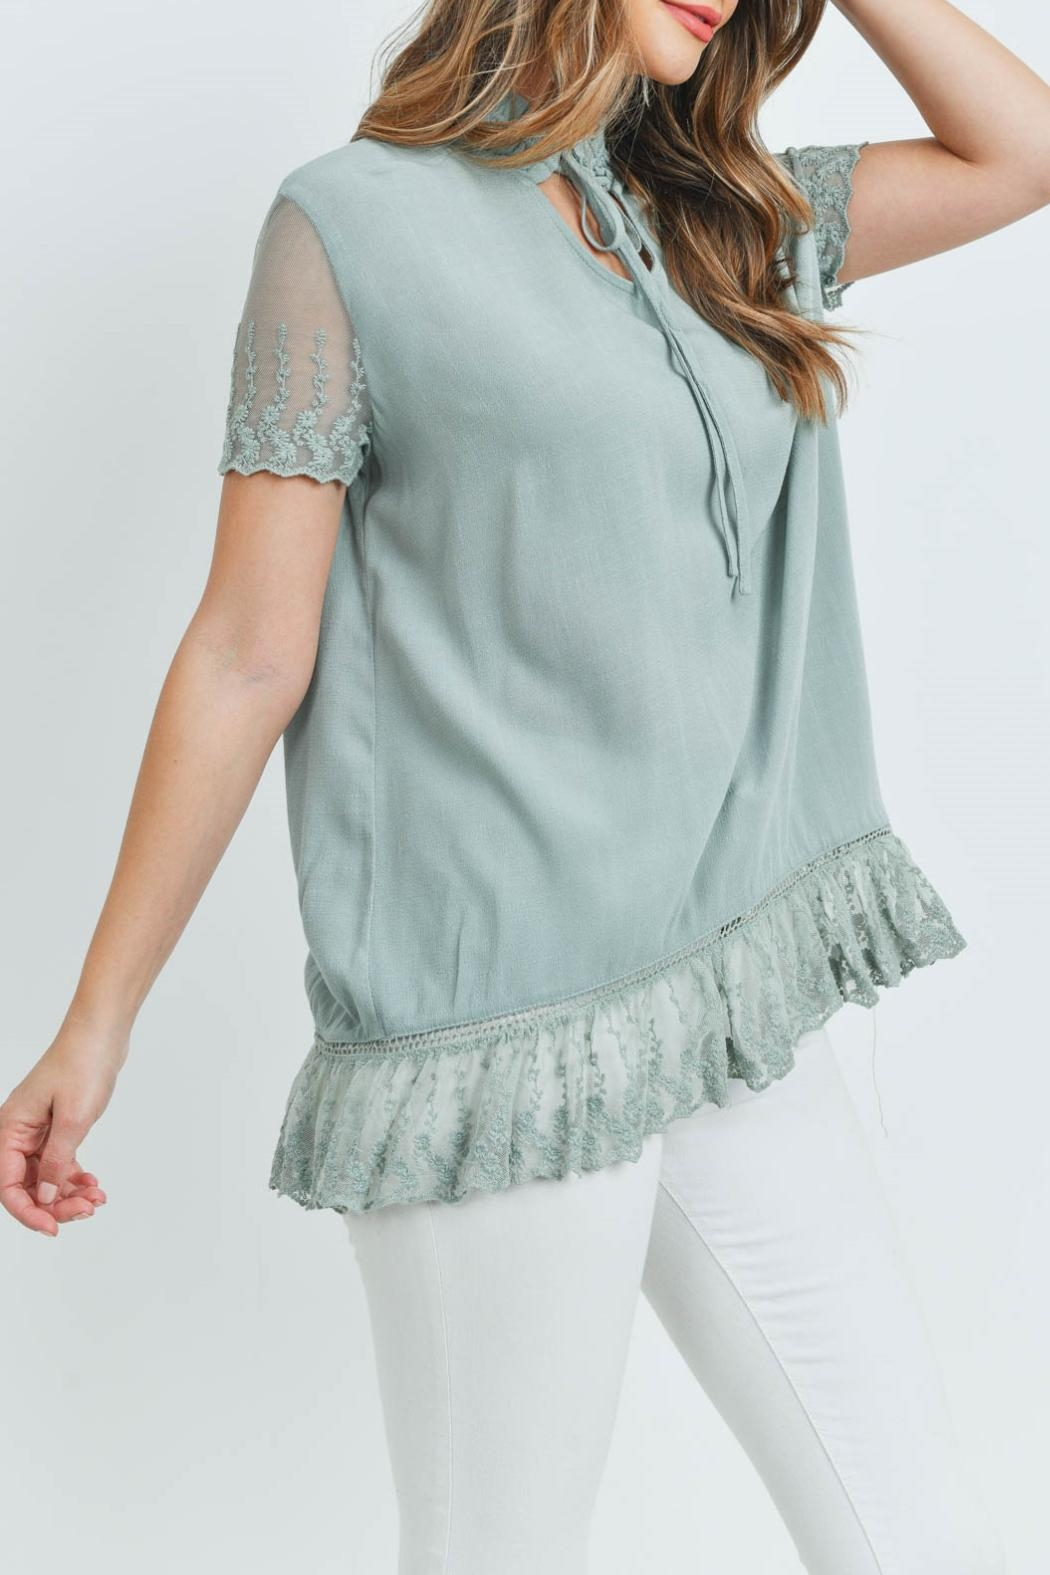 L Love Sage Lace Top - Side Cropped Image